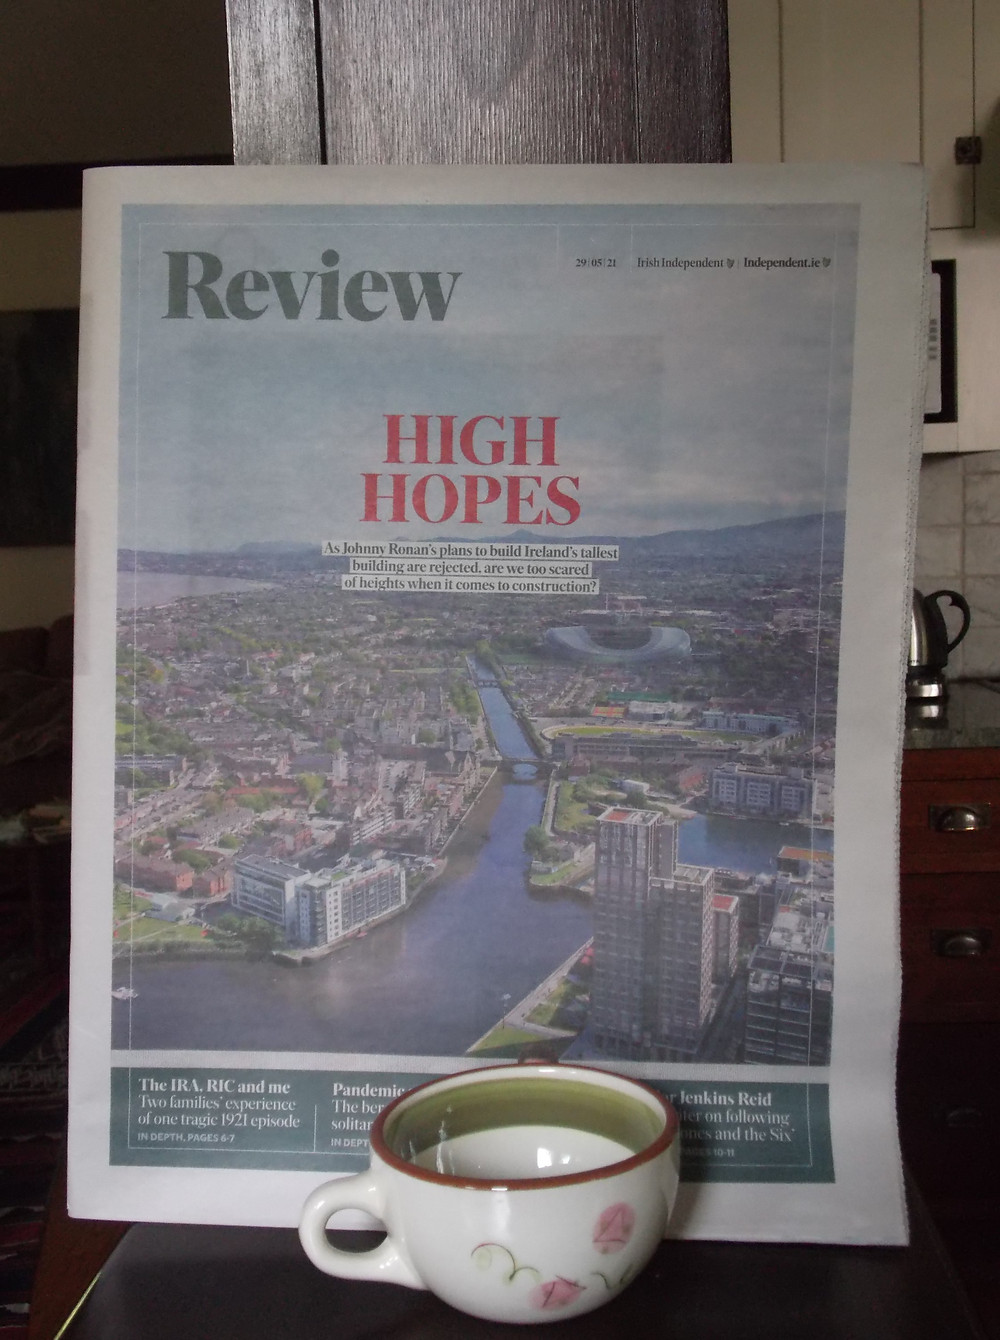 The Irish Independent Review with the words 'High Hopes' on the cover